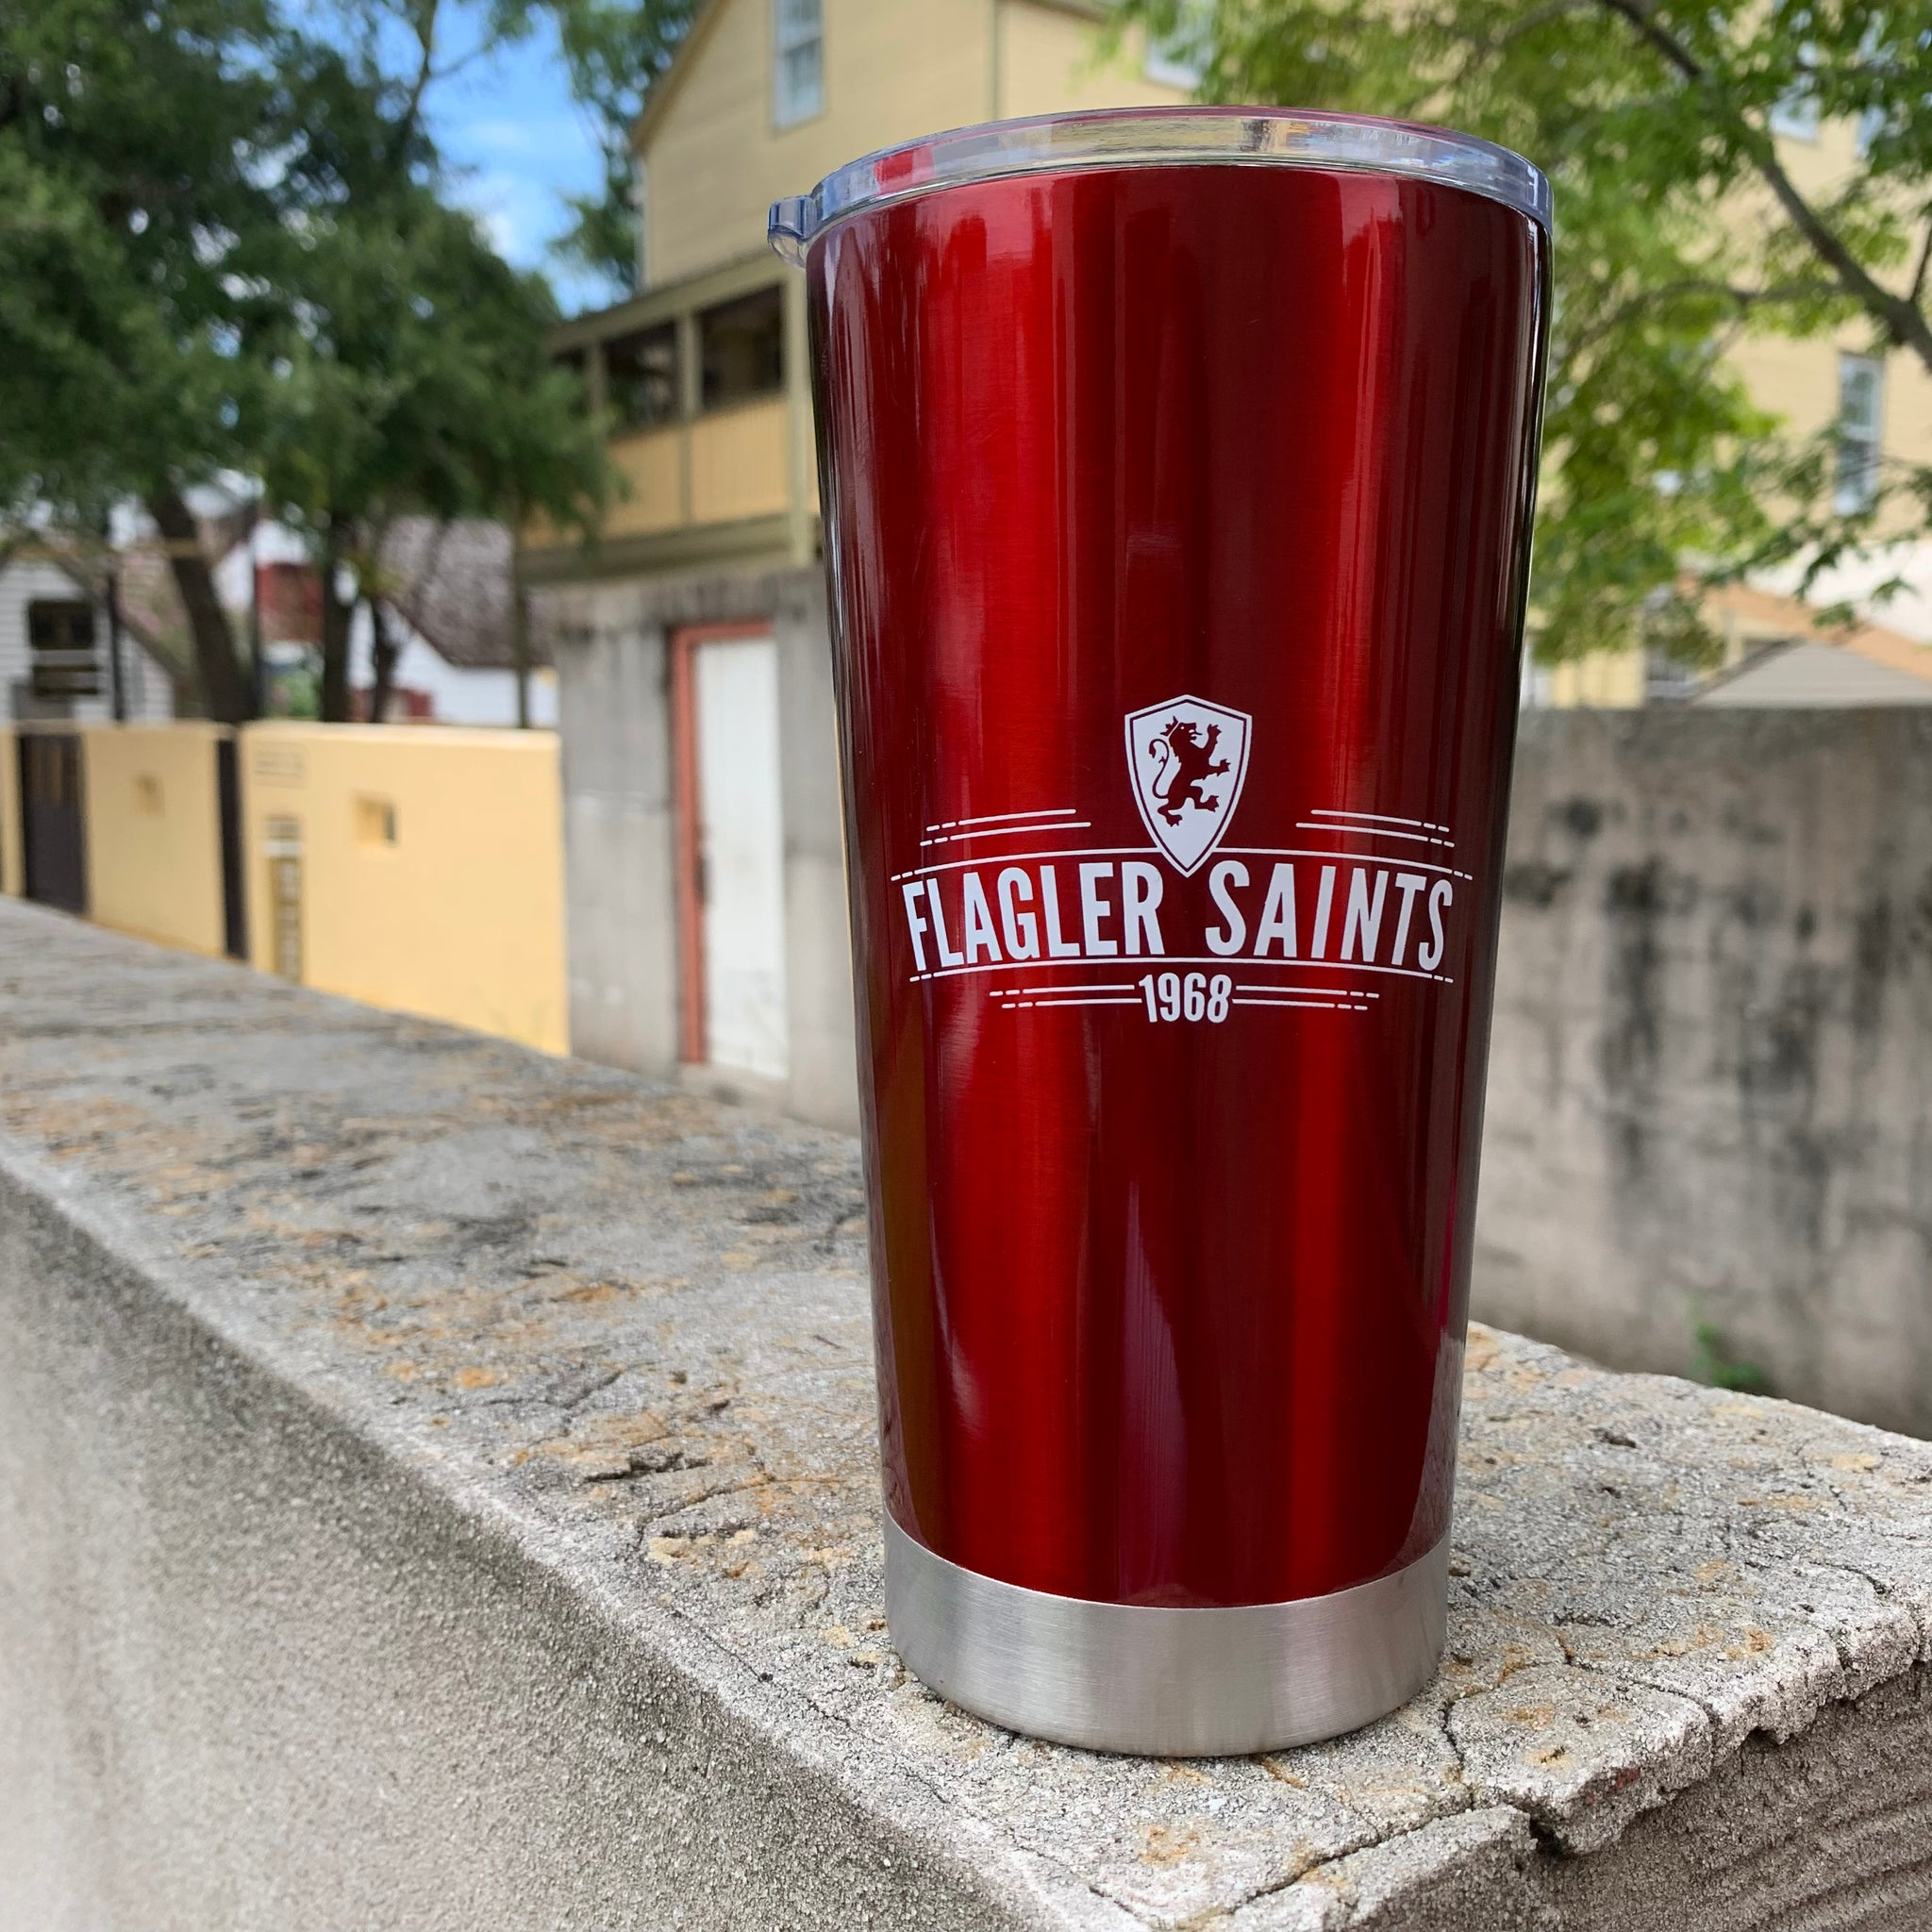 20.9 oz red travel tumbler with shield, Flagler saints and 1968 printed in white